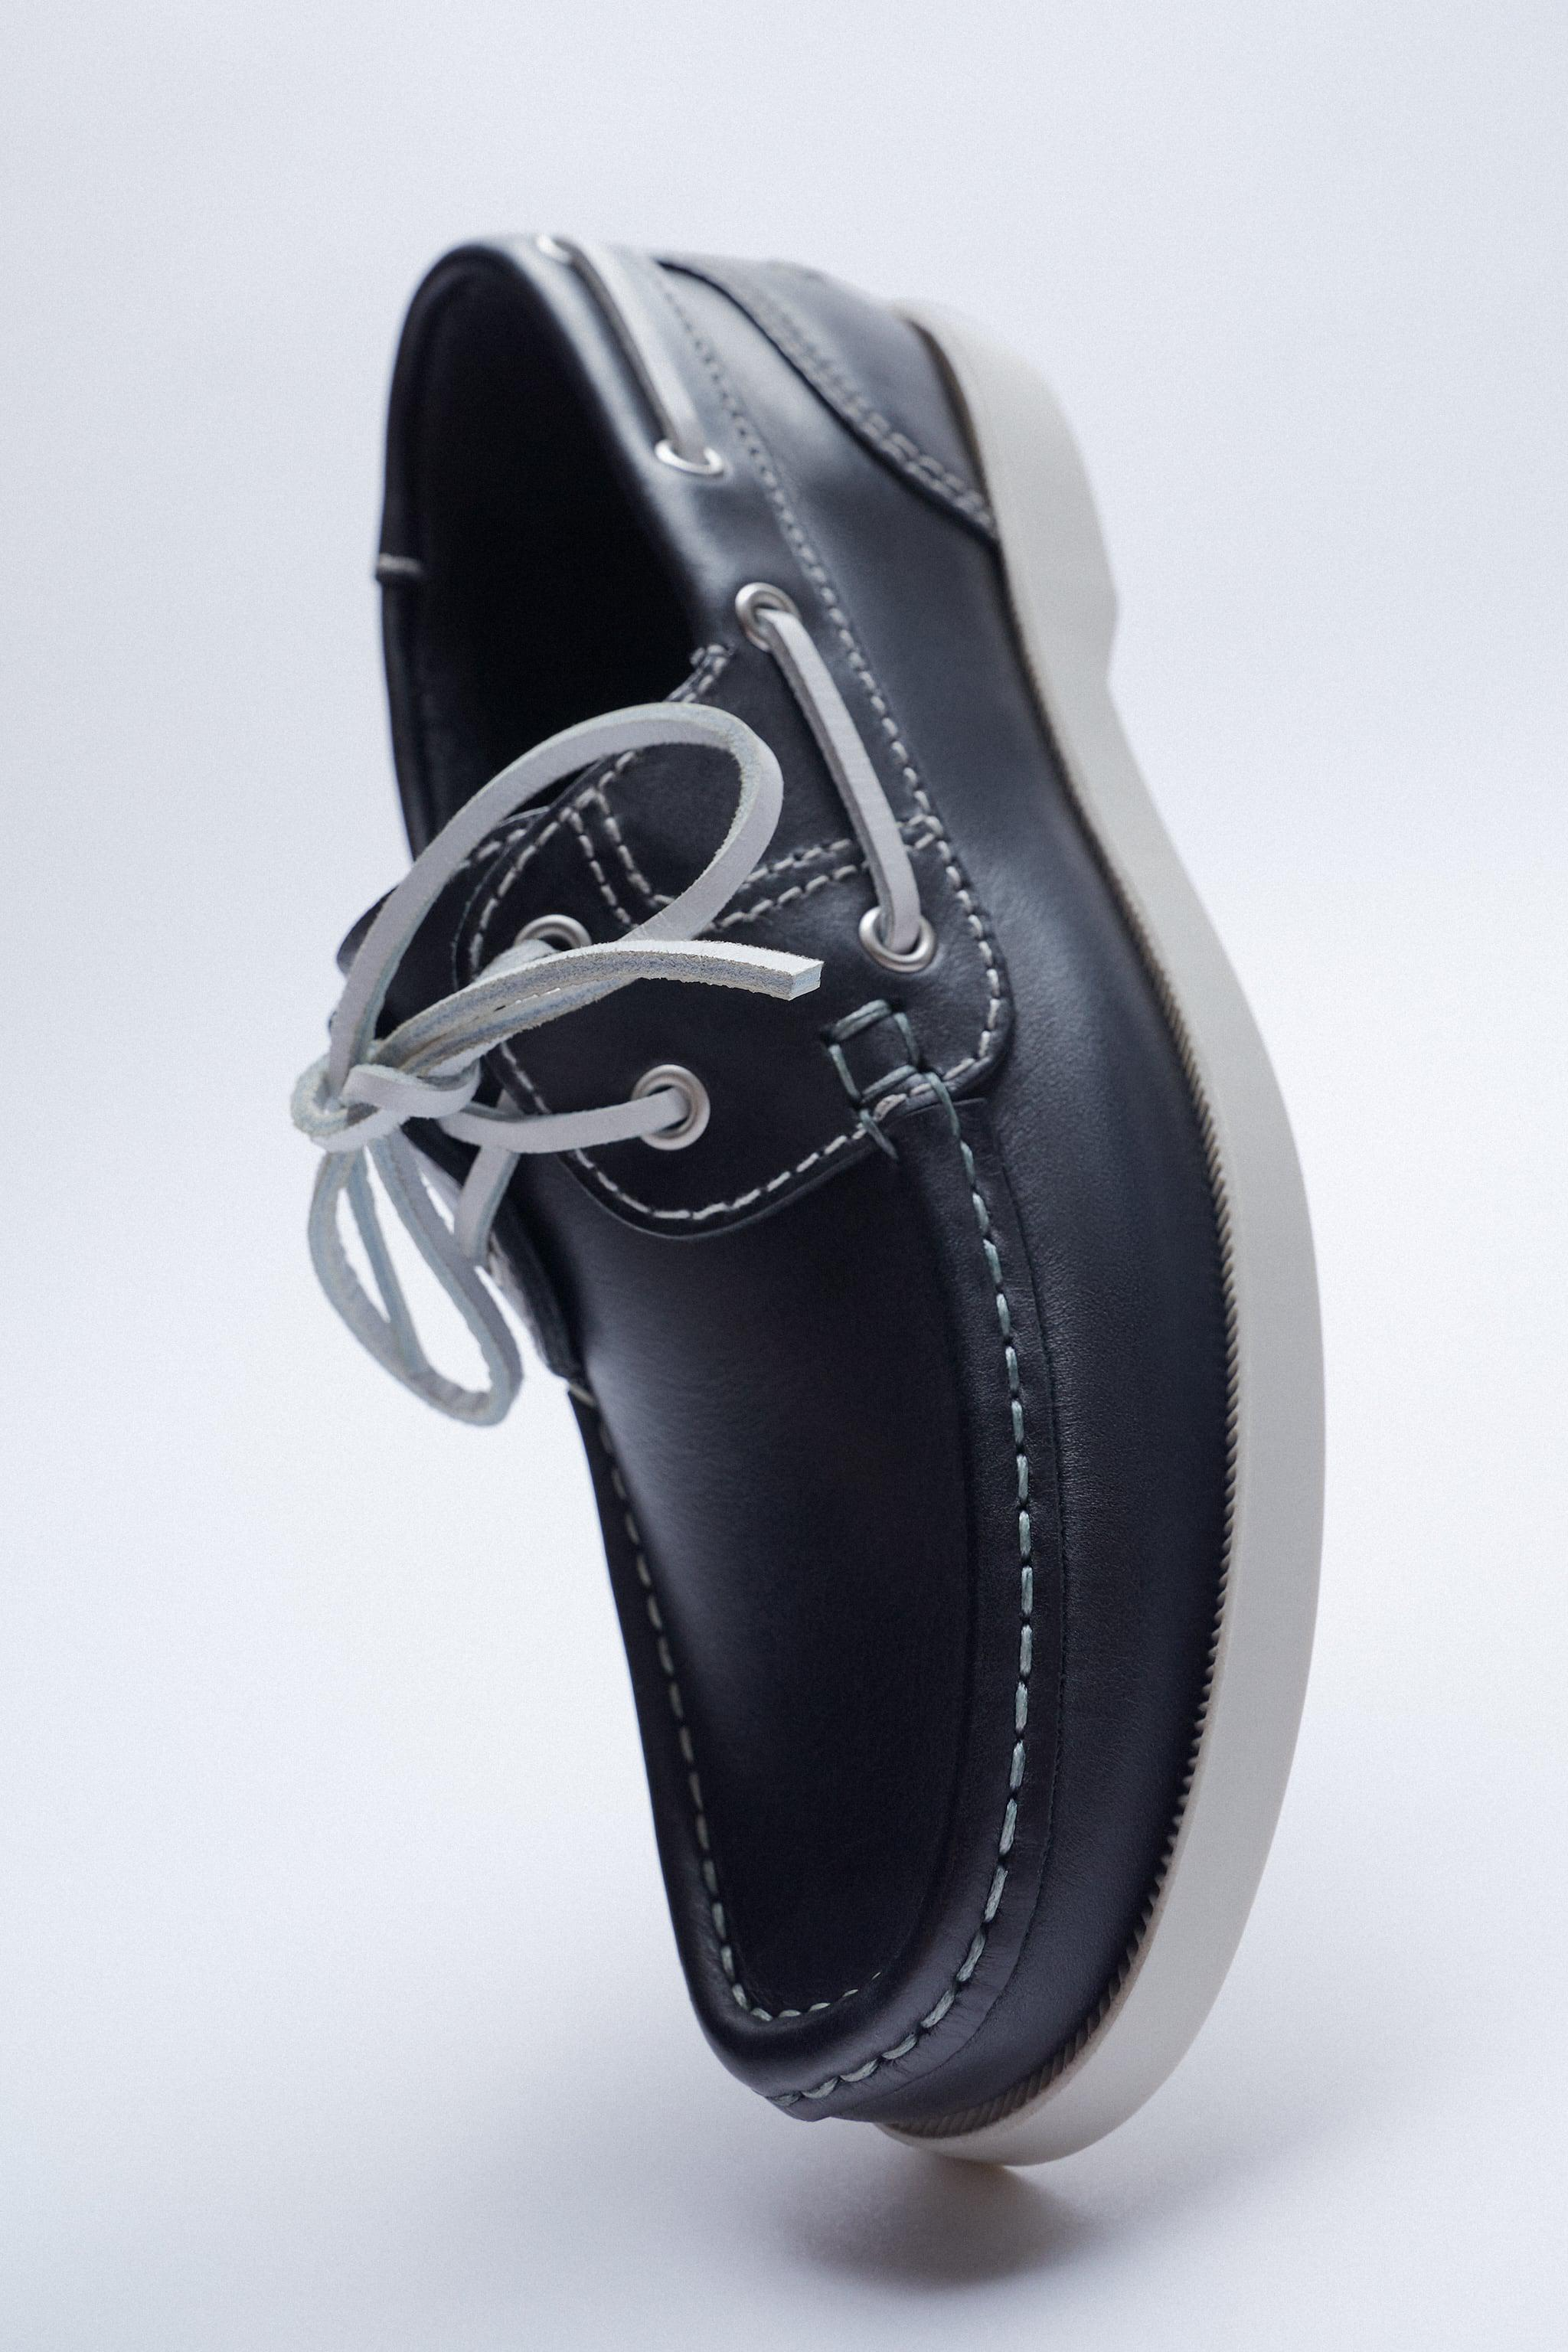 LOW HEEL LEATHER BOAT SHOES 6